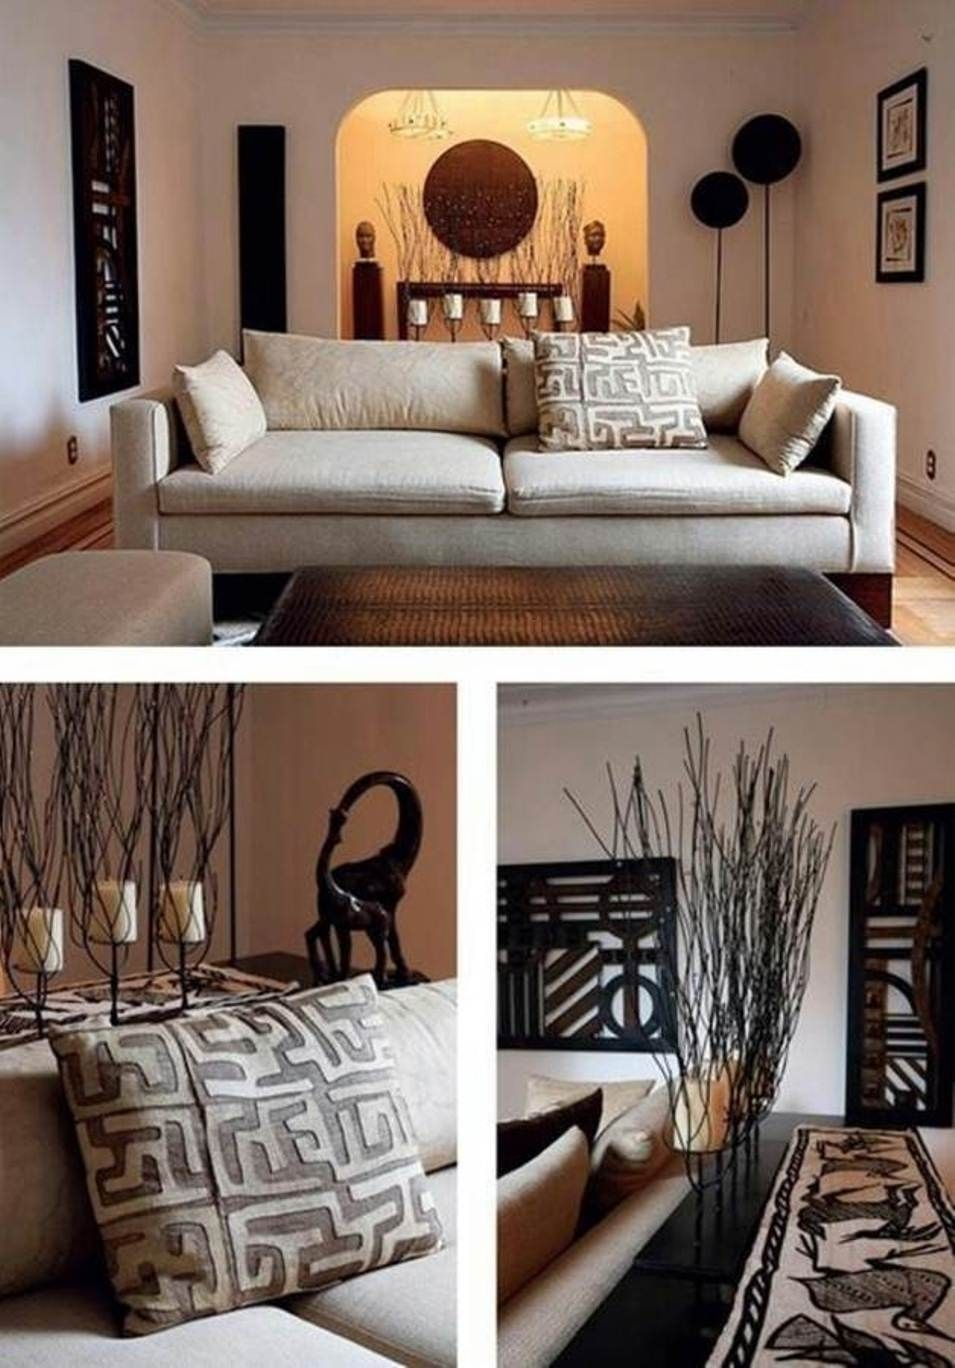 South African Decorating Ideas | Pinspired Interiors: Globally Regarding Most Up To Date African Wall Accents (View 11 of 15)